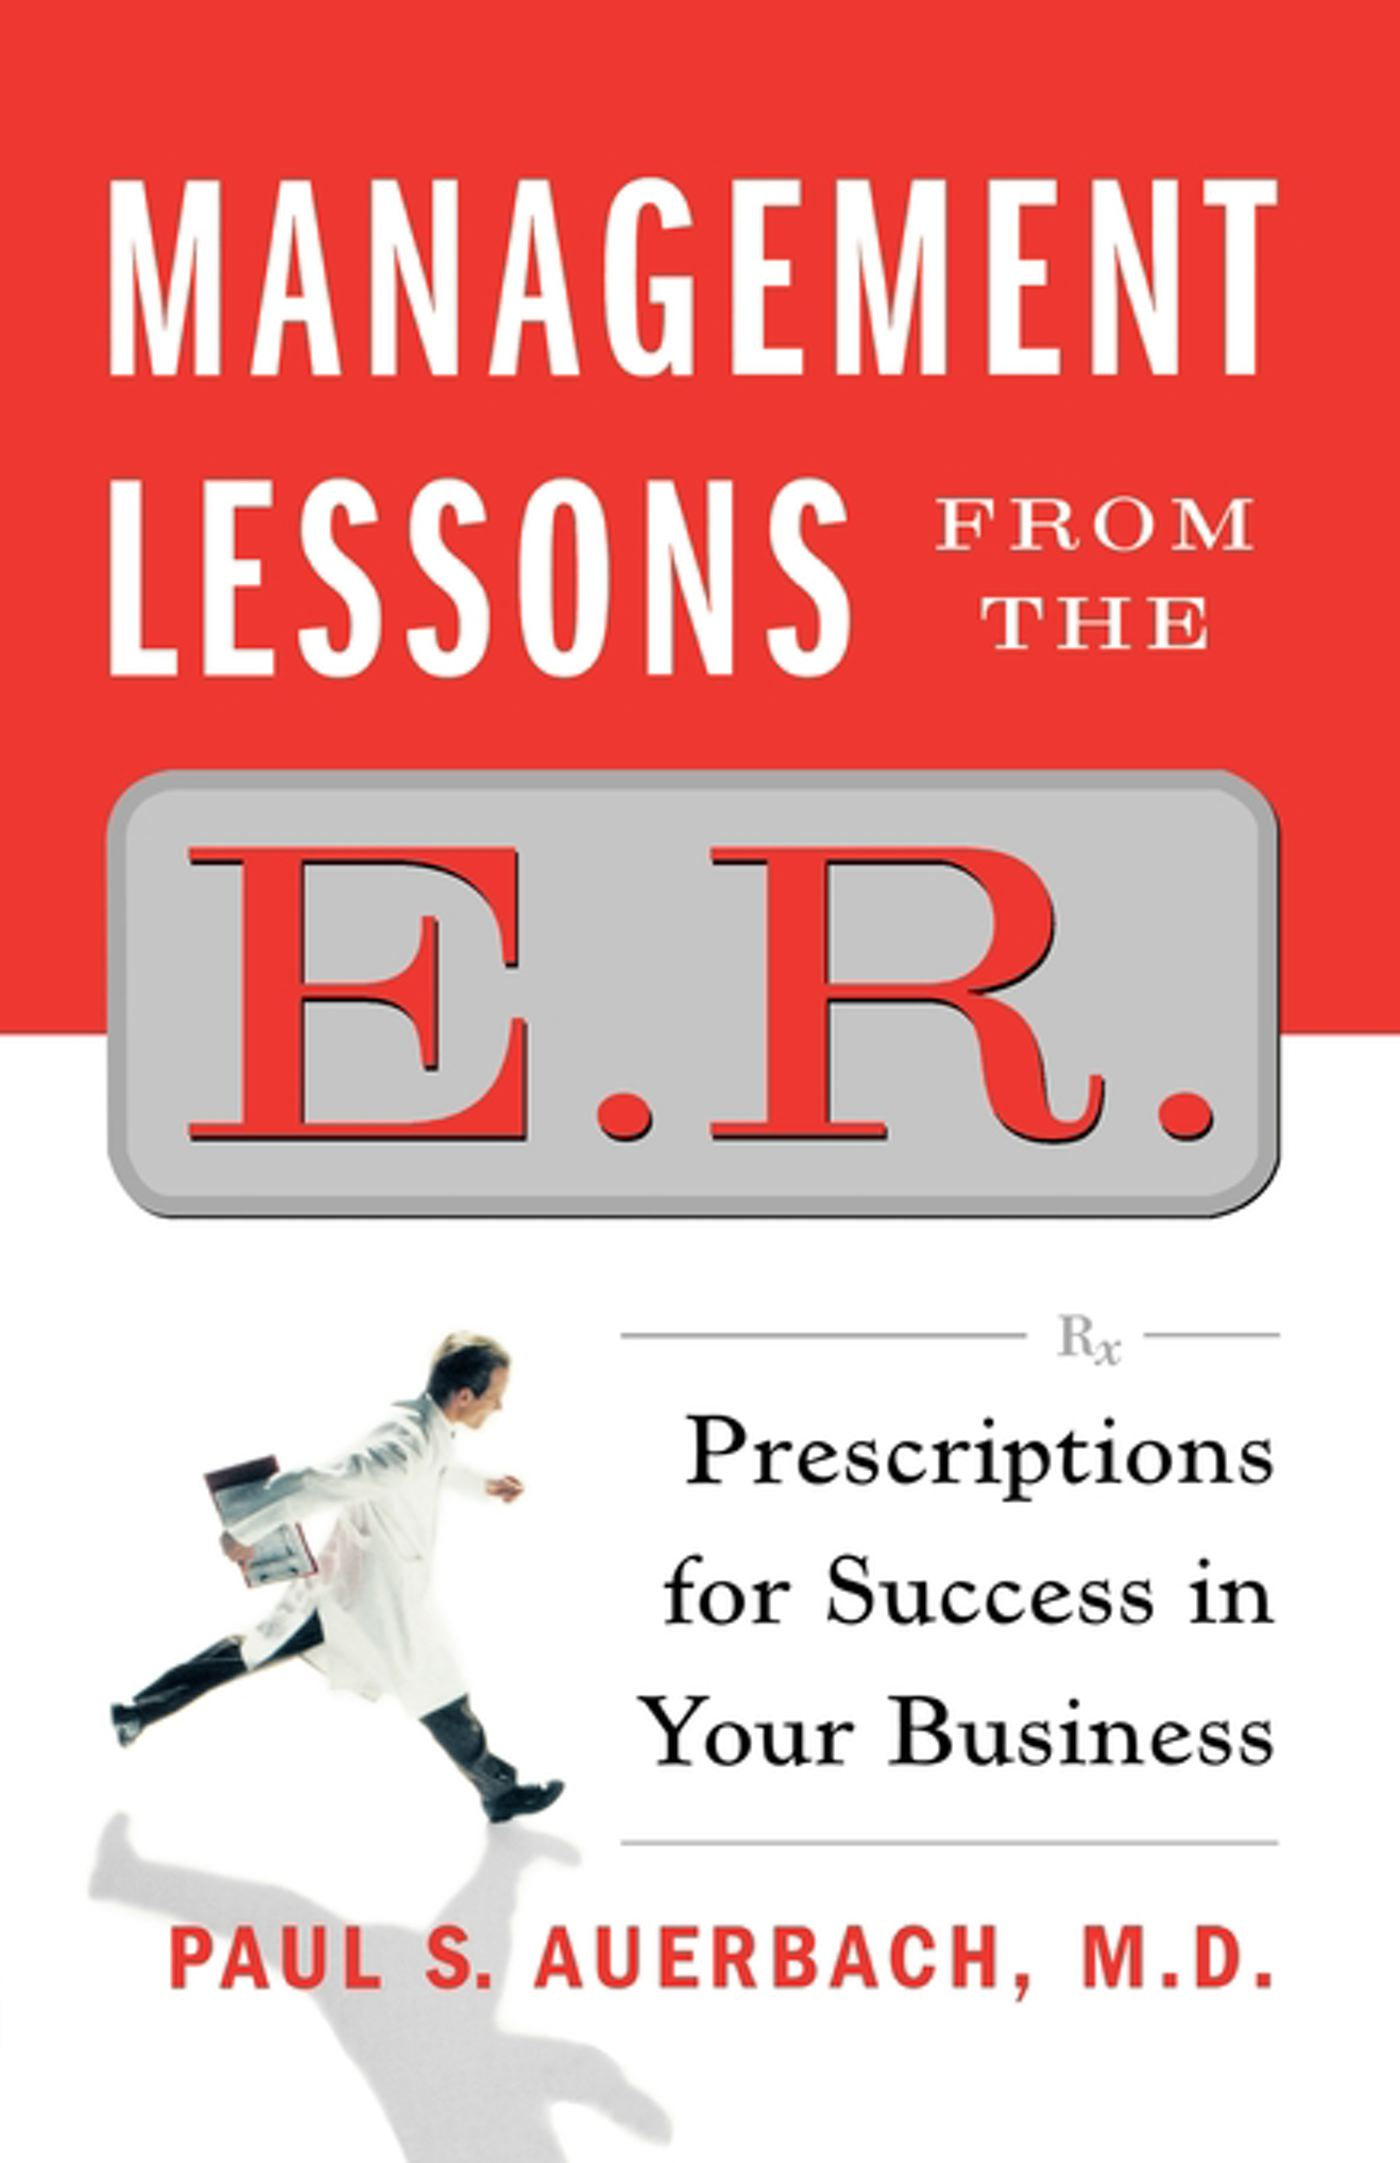 Management Lessons from the E.R.: Prescriptions for Success in Your Business